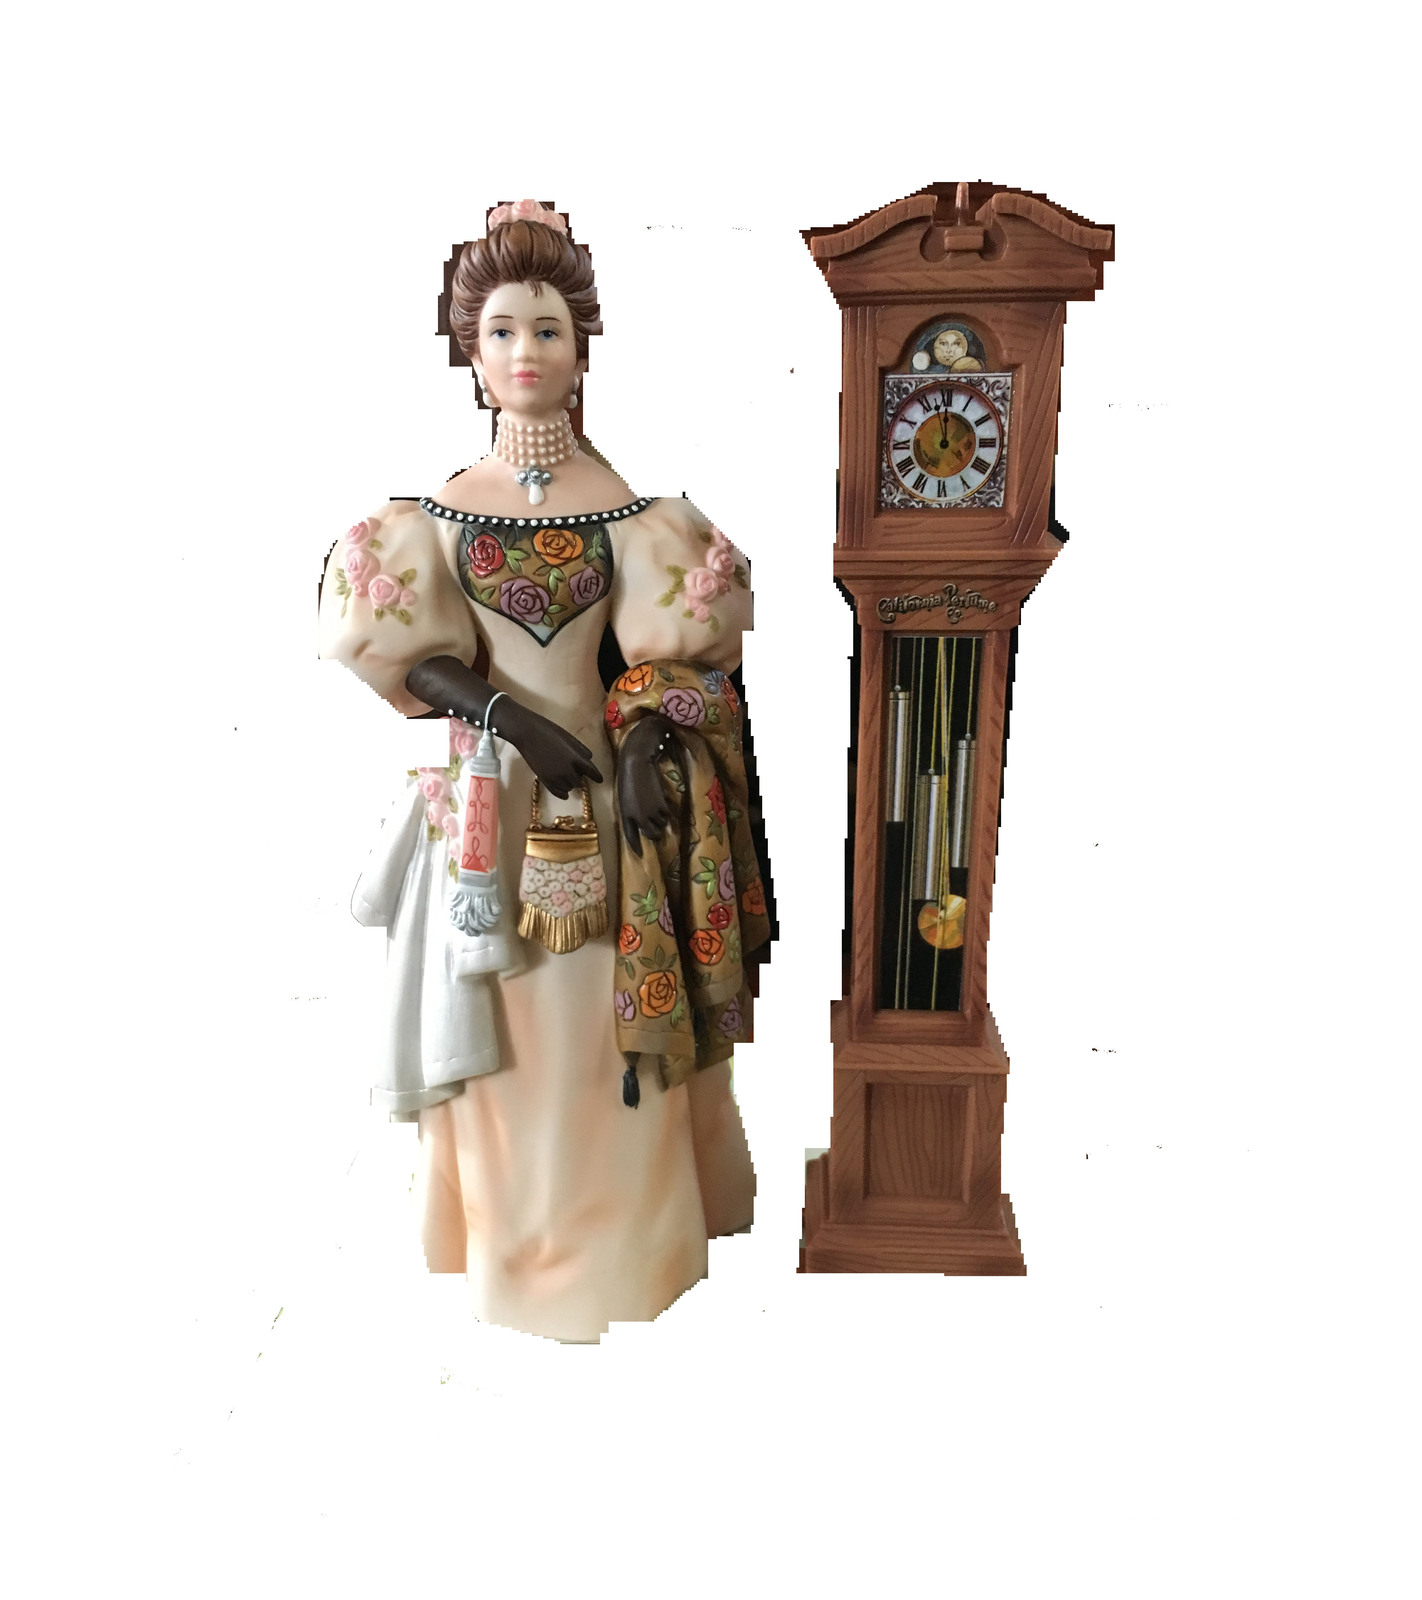 Lady standing next to grand father clock